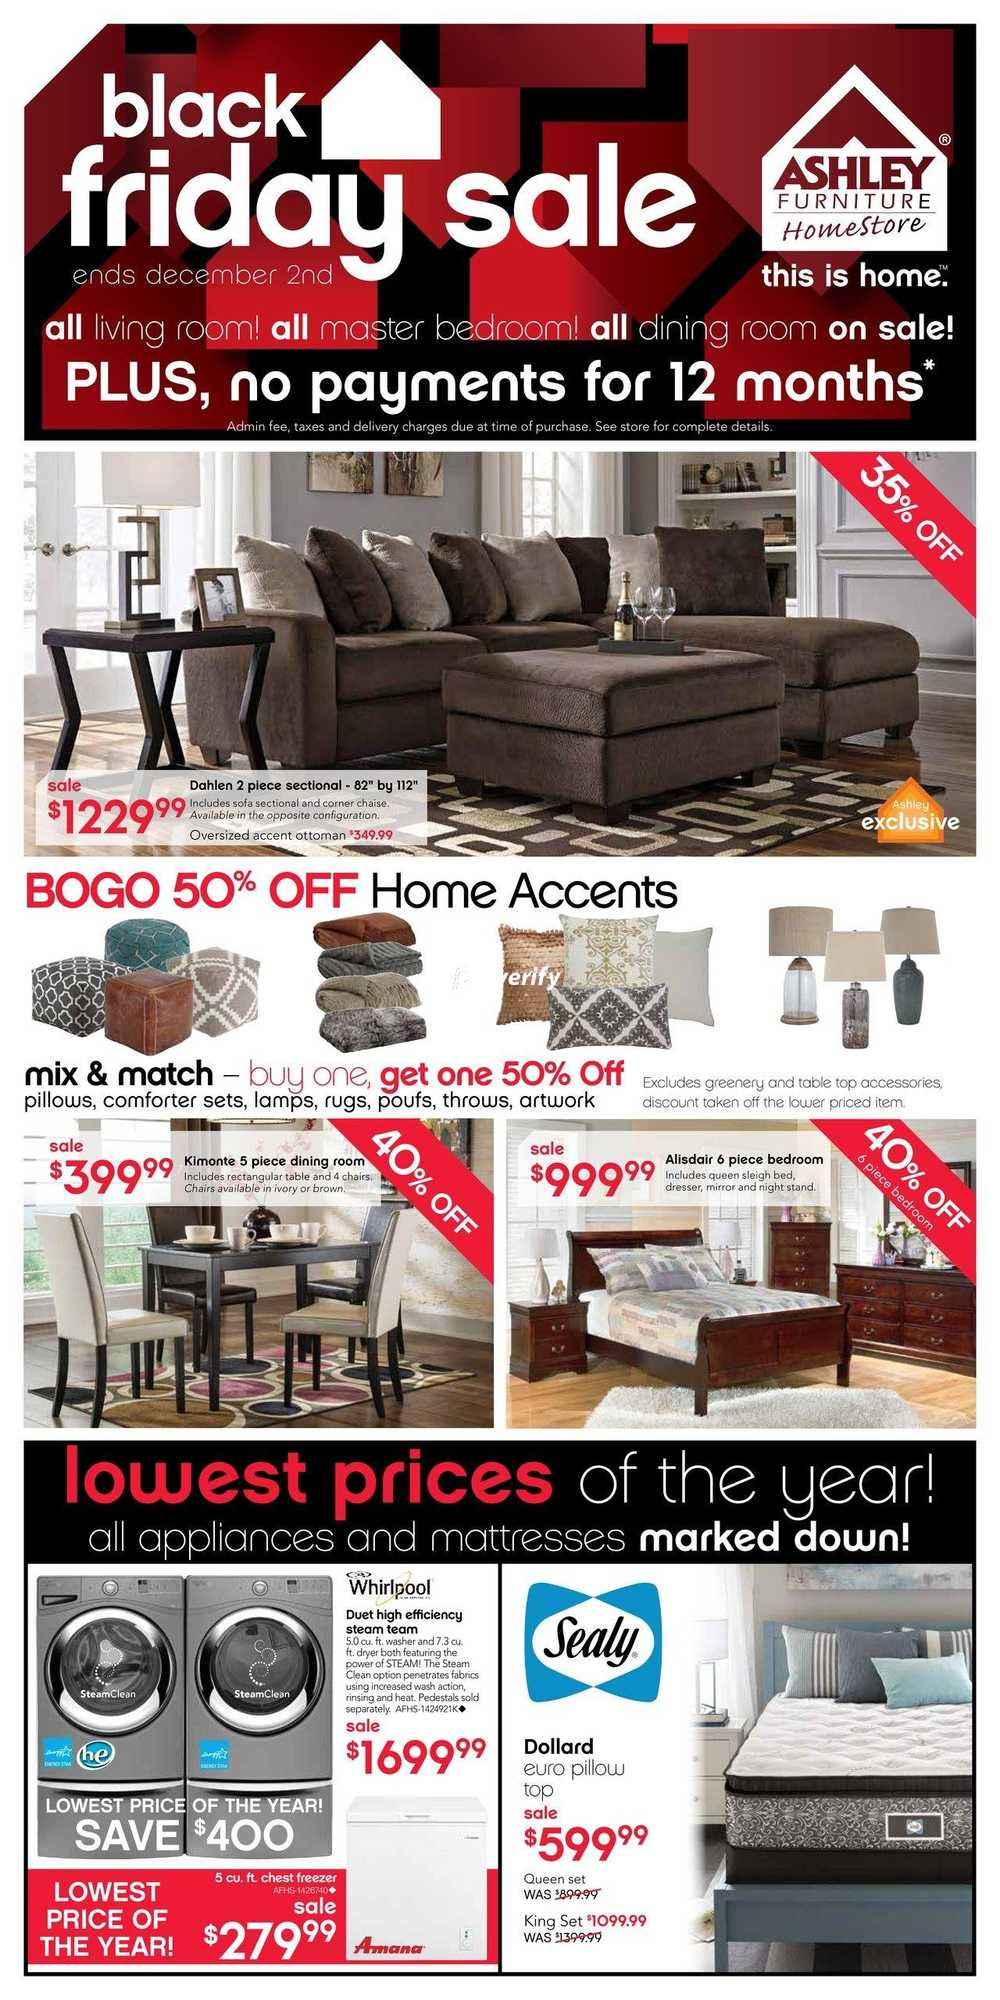 Ashley Furniture Home Store  West  Black Friday Flyer November 26 to  December 2. Ashley Furniture Homestore Flyers